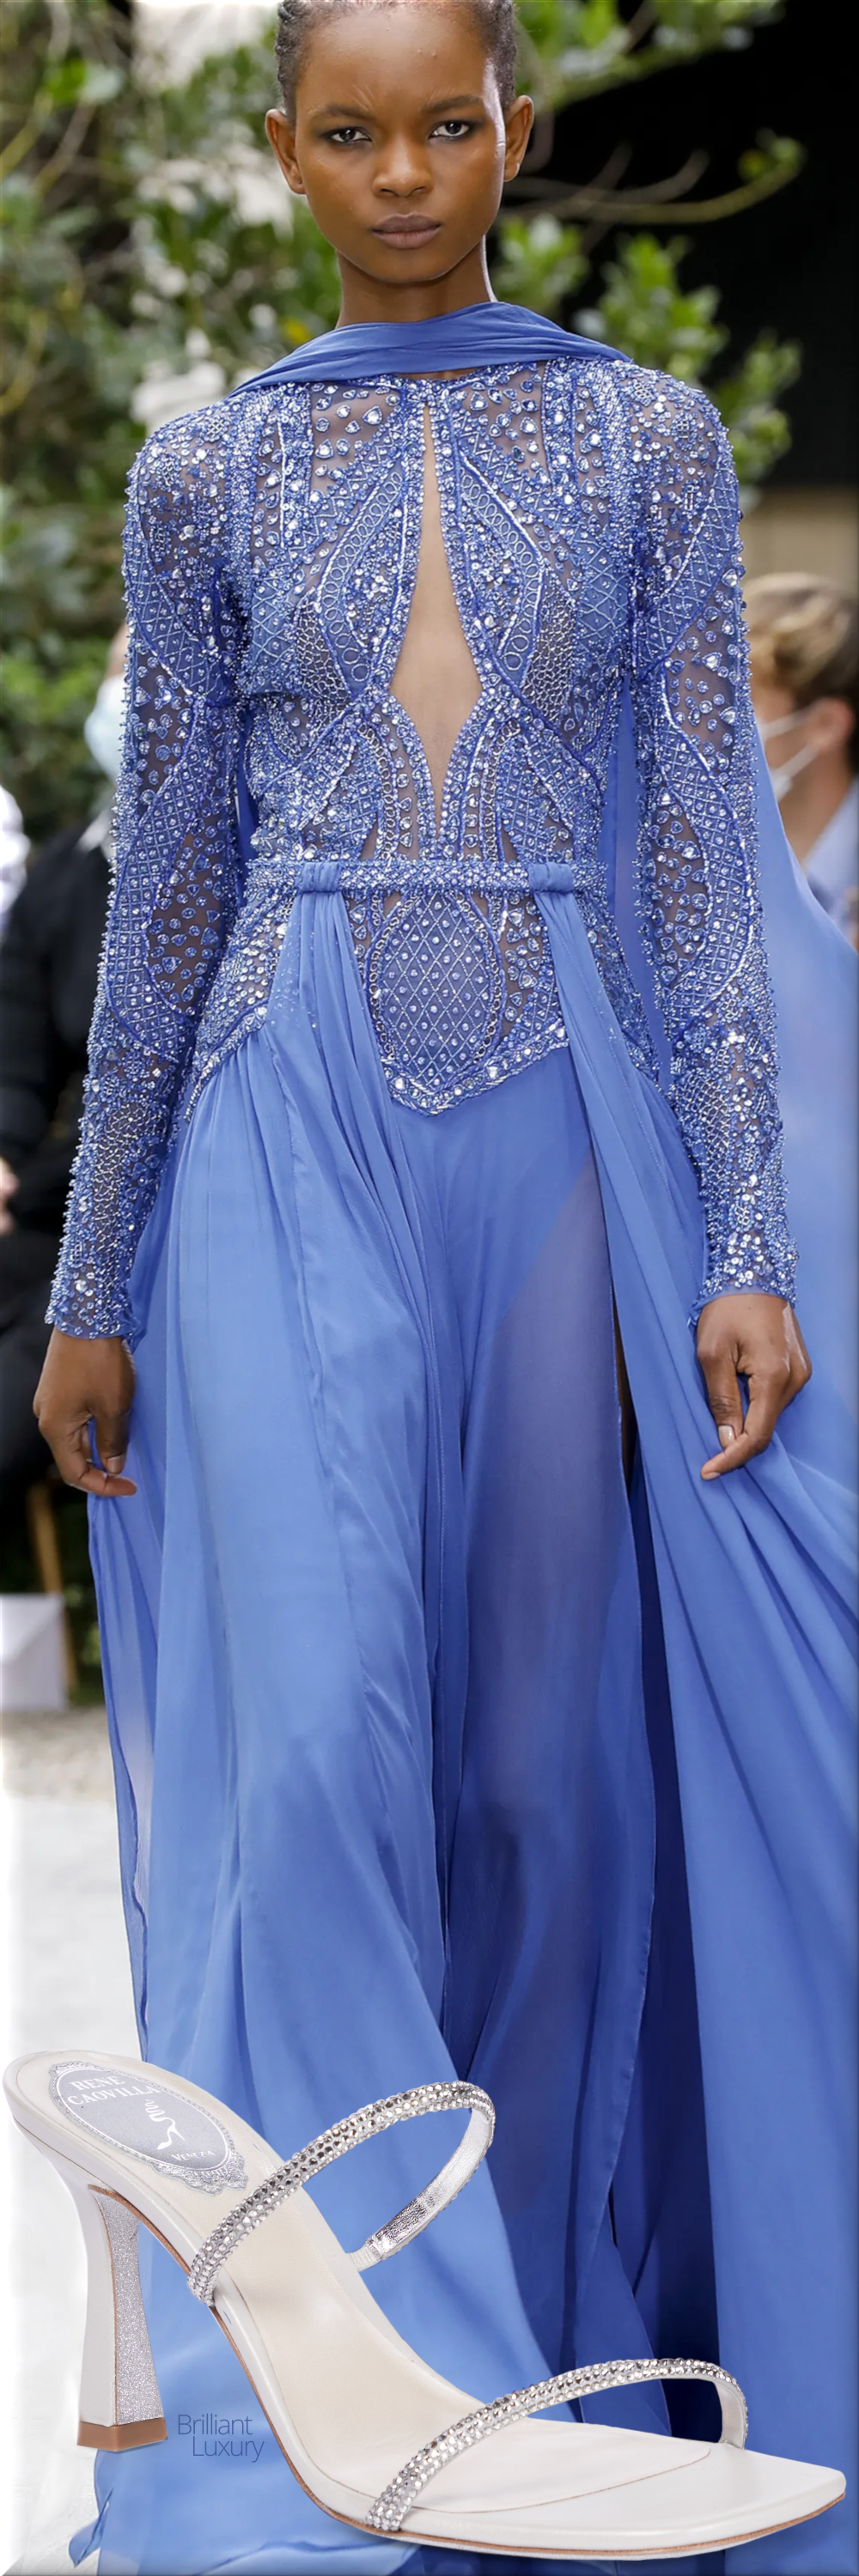 Zuhair Murad blue couture gown fall 2021 & Rene Caovilla Bessie crystal-embellished sandals #renecaovilla #shoes #fashion #blue #brilliantluxury